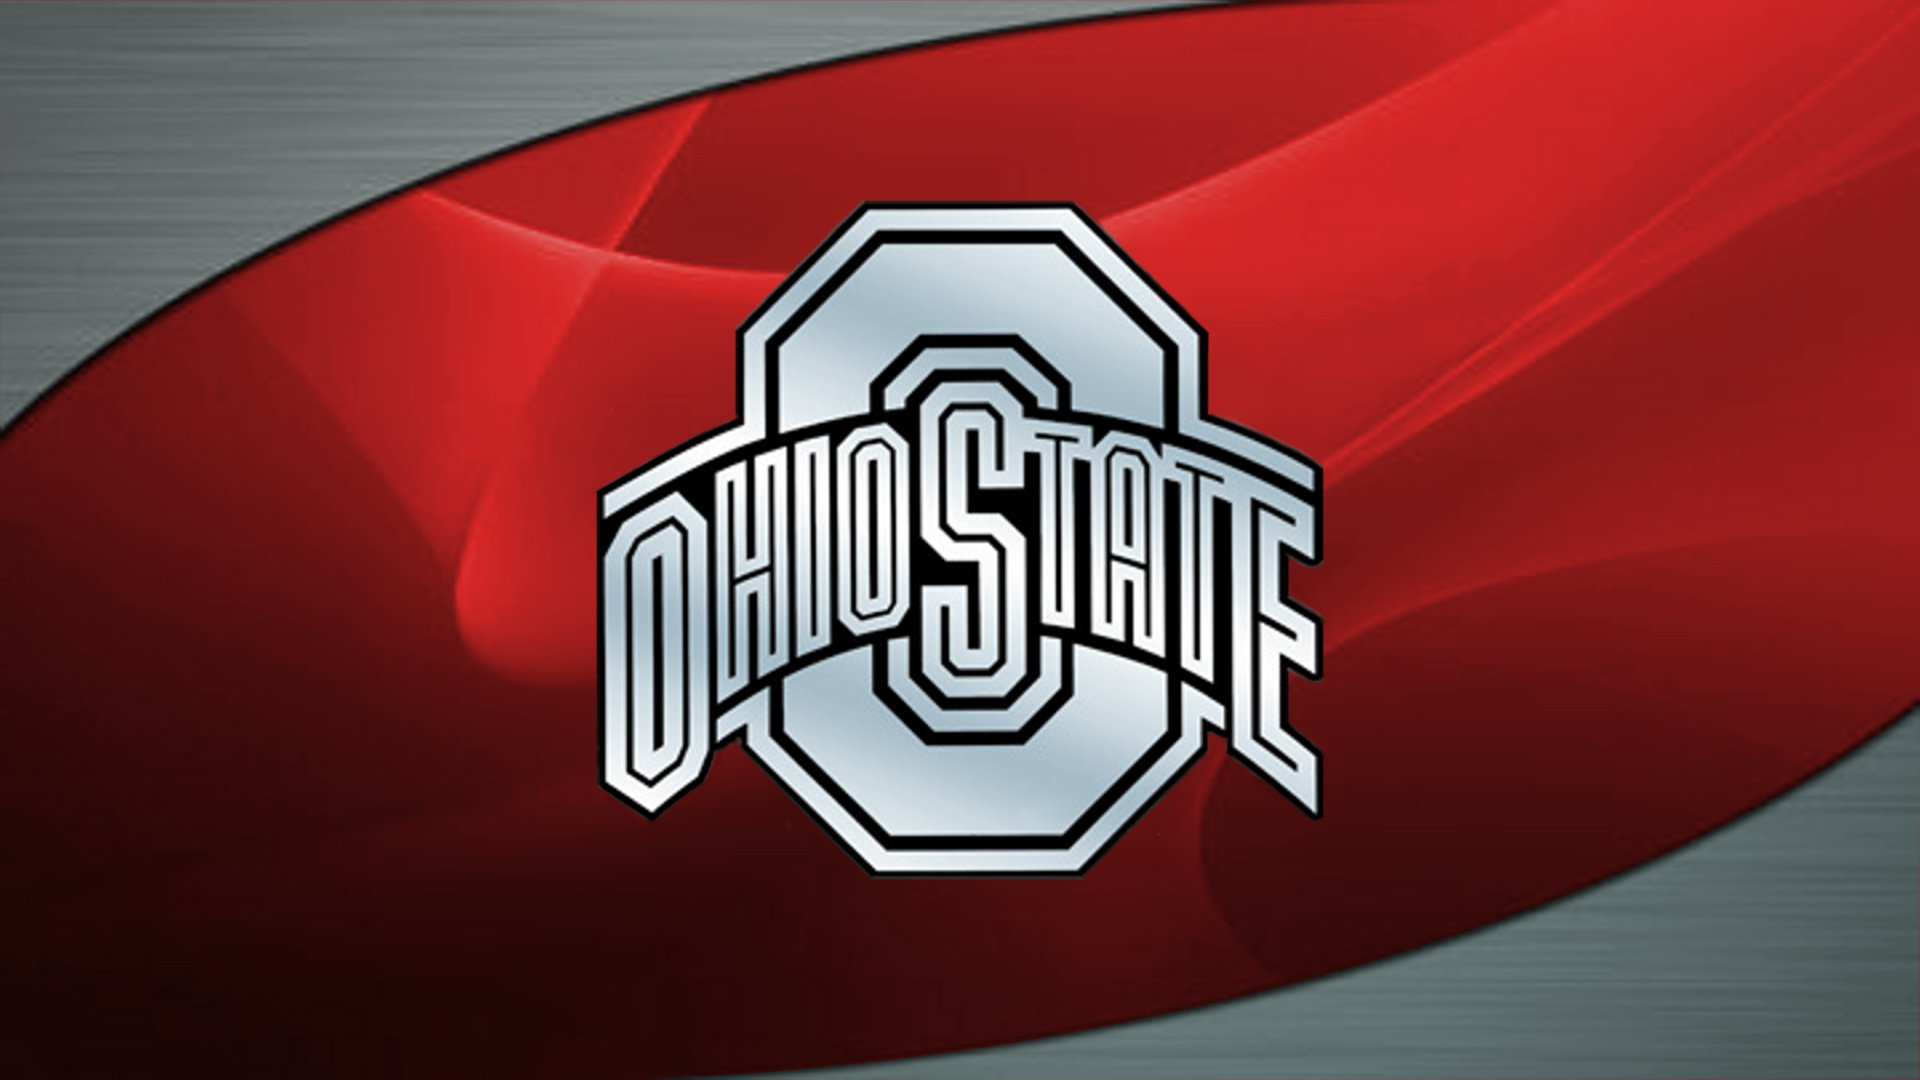 OSU Wallpaper 45 - Ohio State Football Wallpaper (29249112 ...